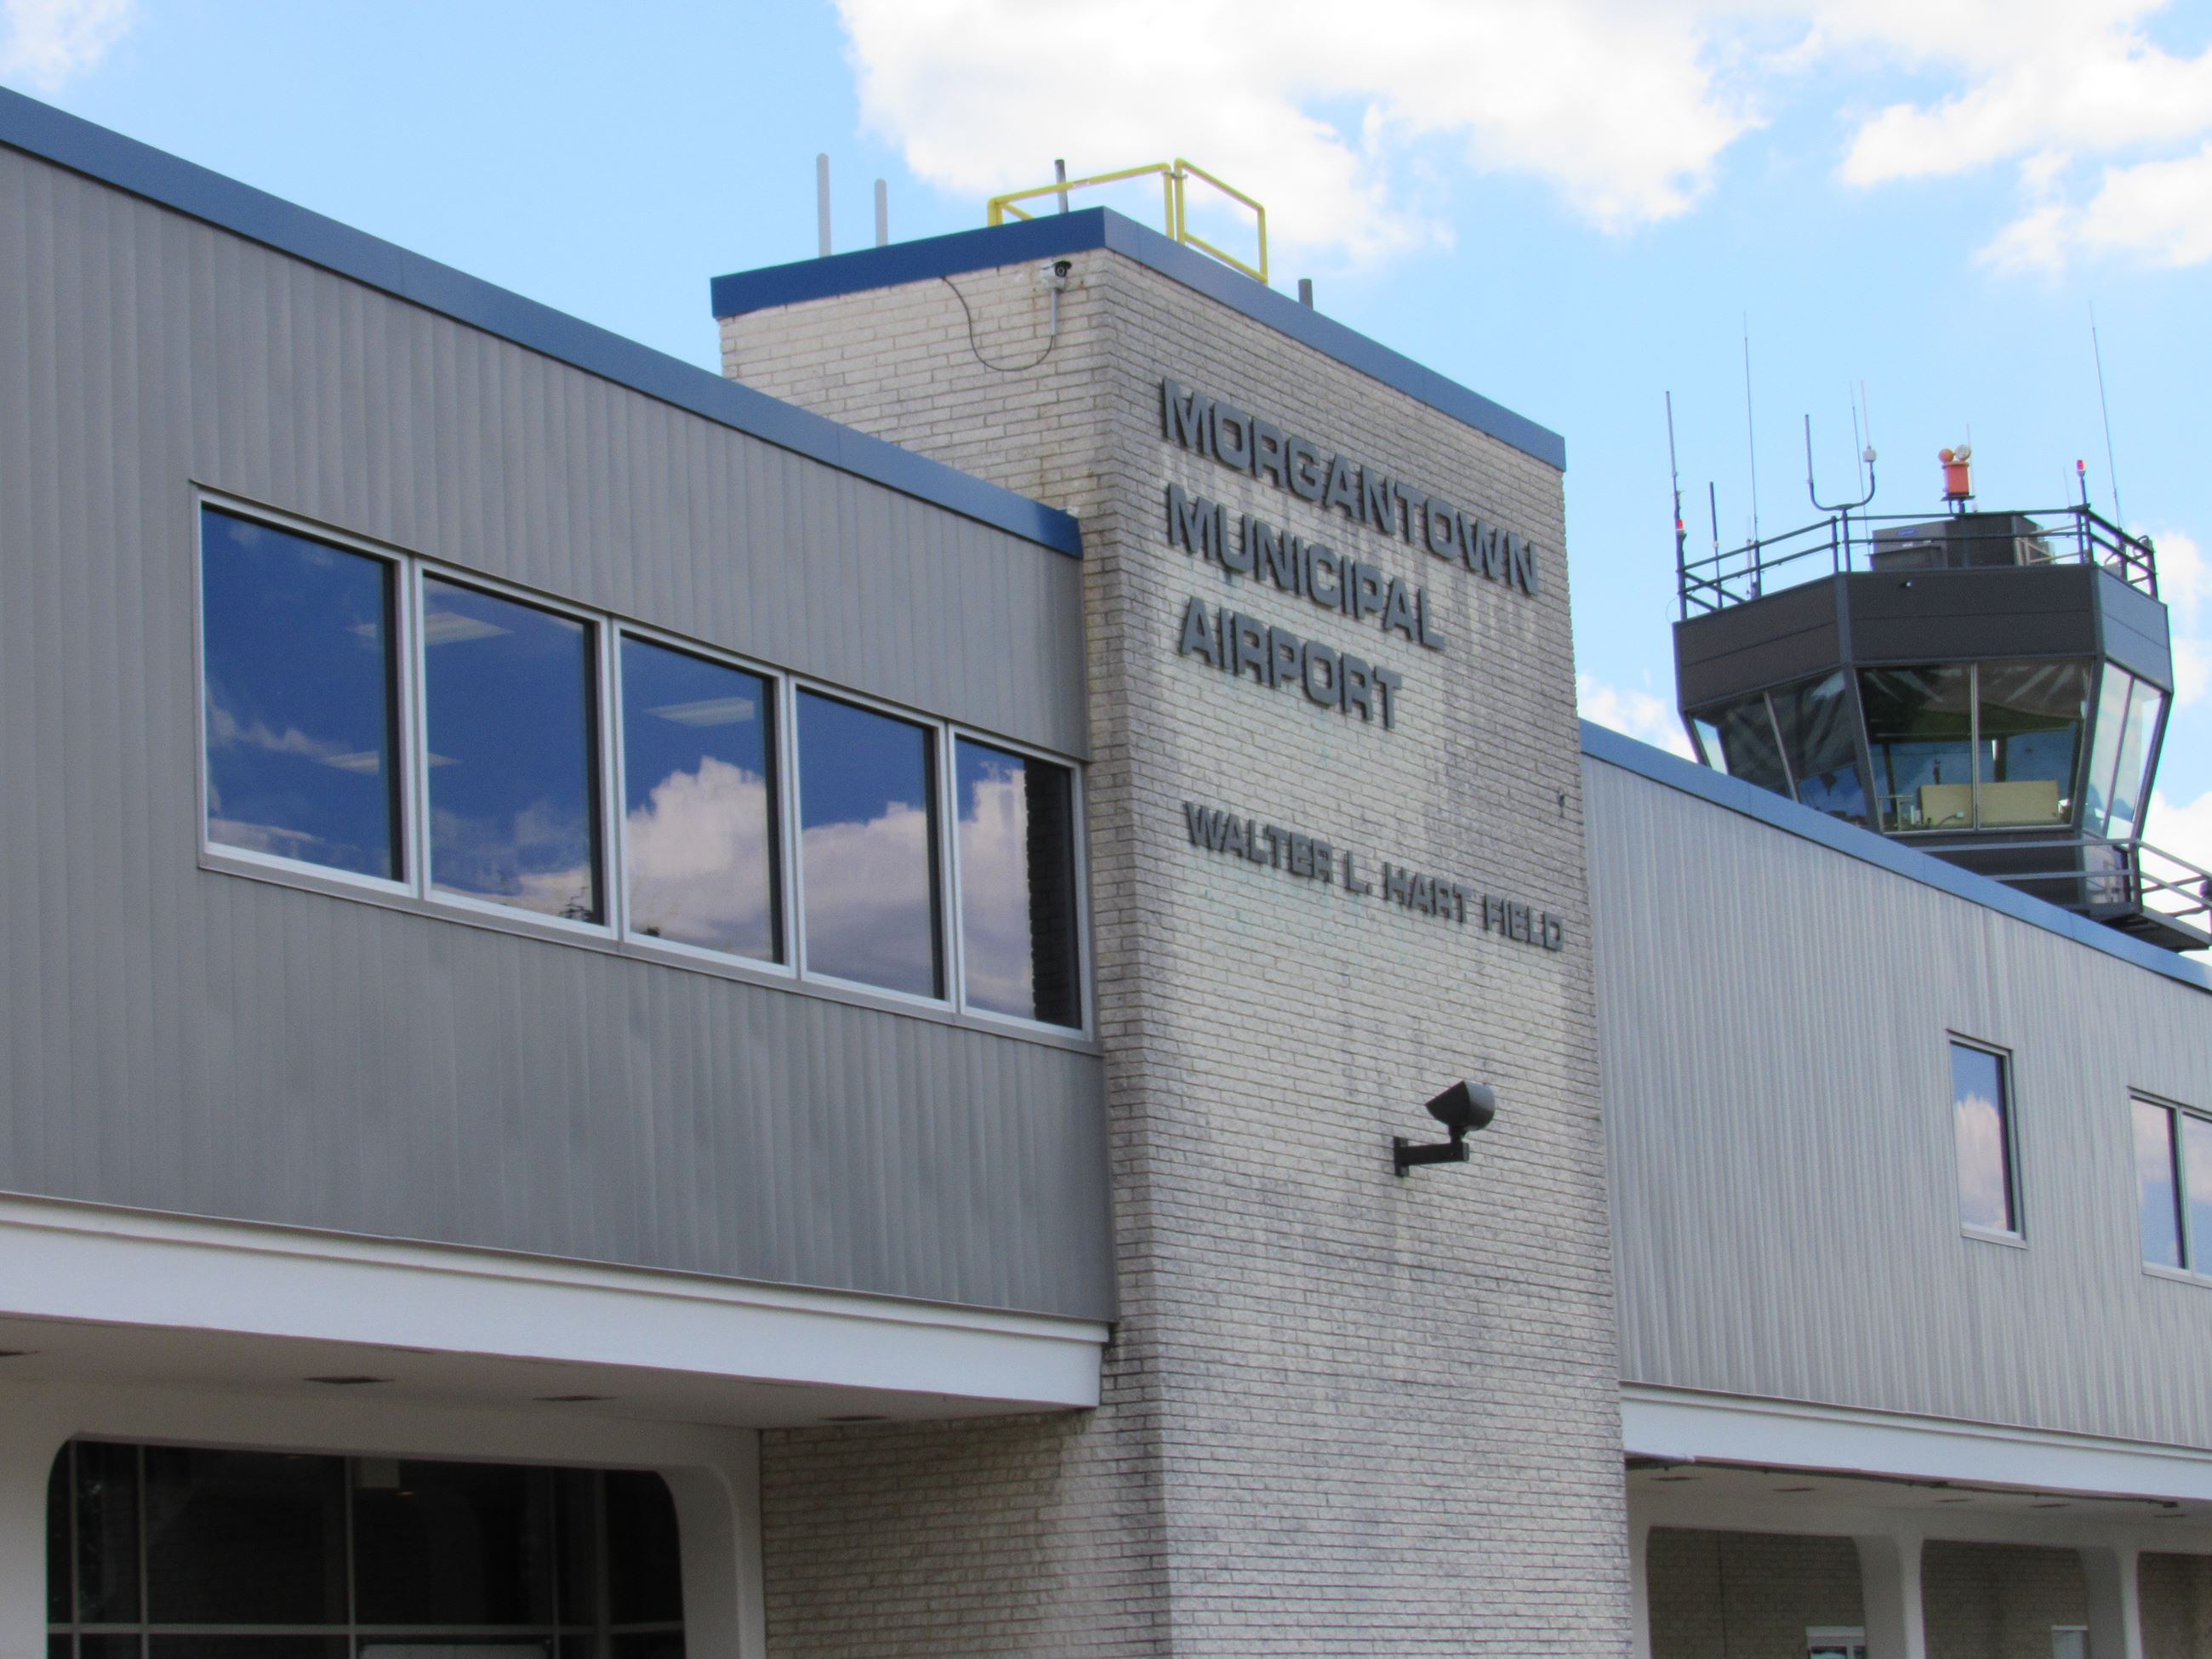 A picture of the Morgantown Municipal Airport terminal.